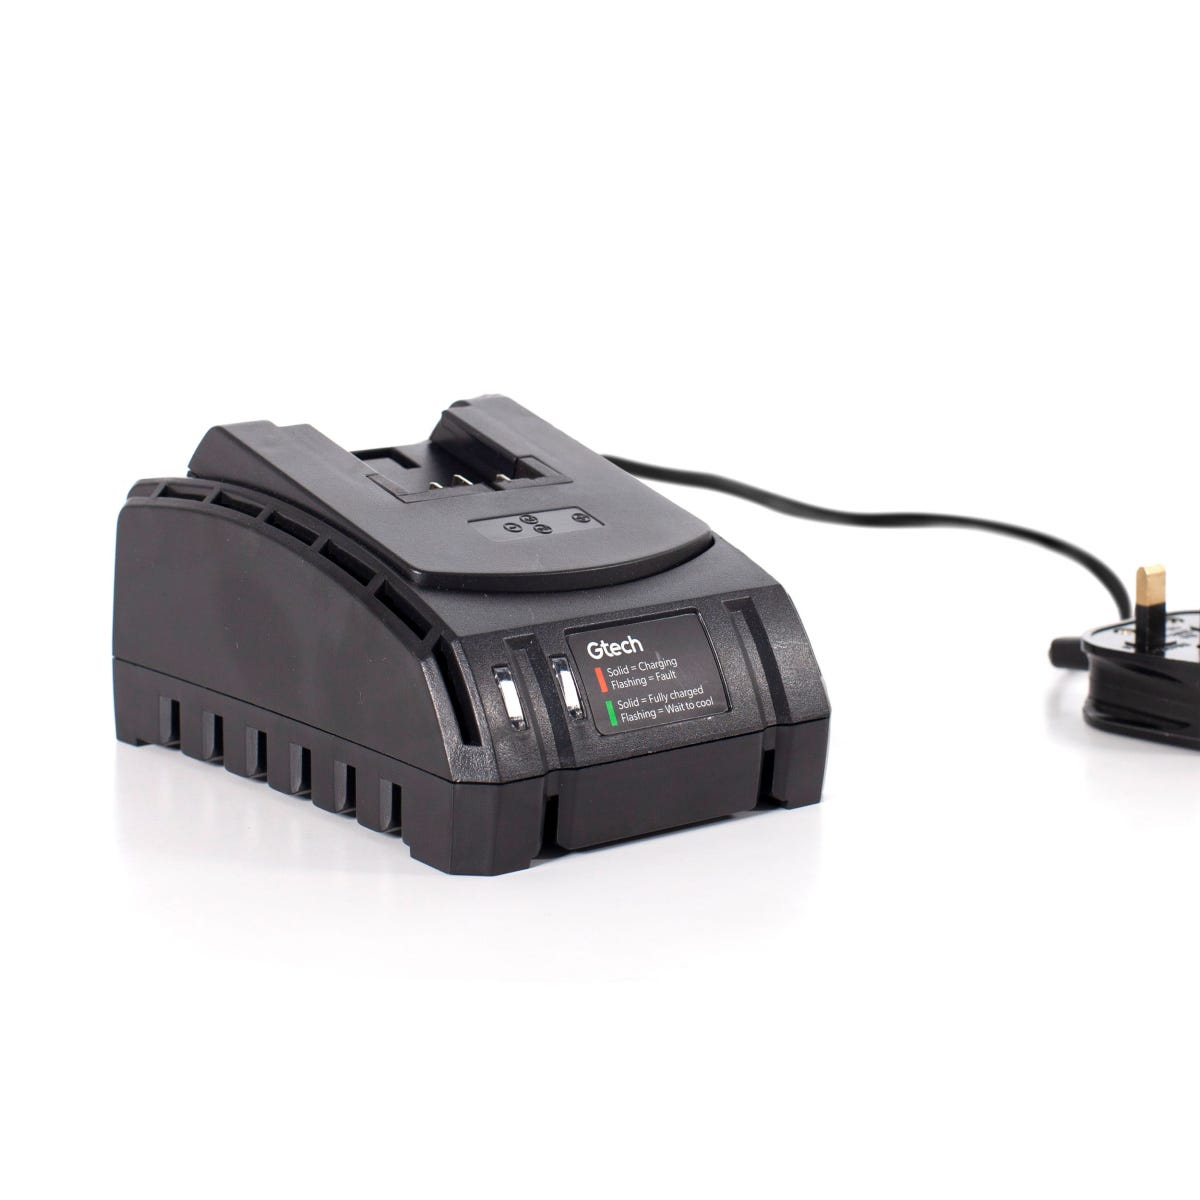 Gtech Charger